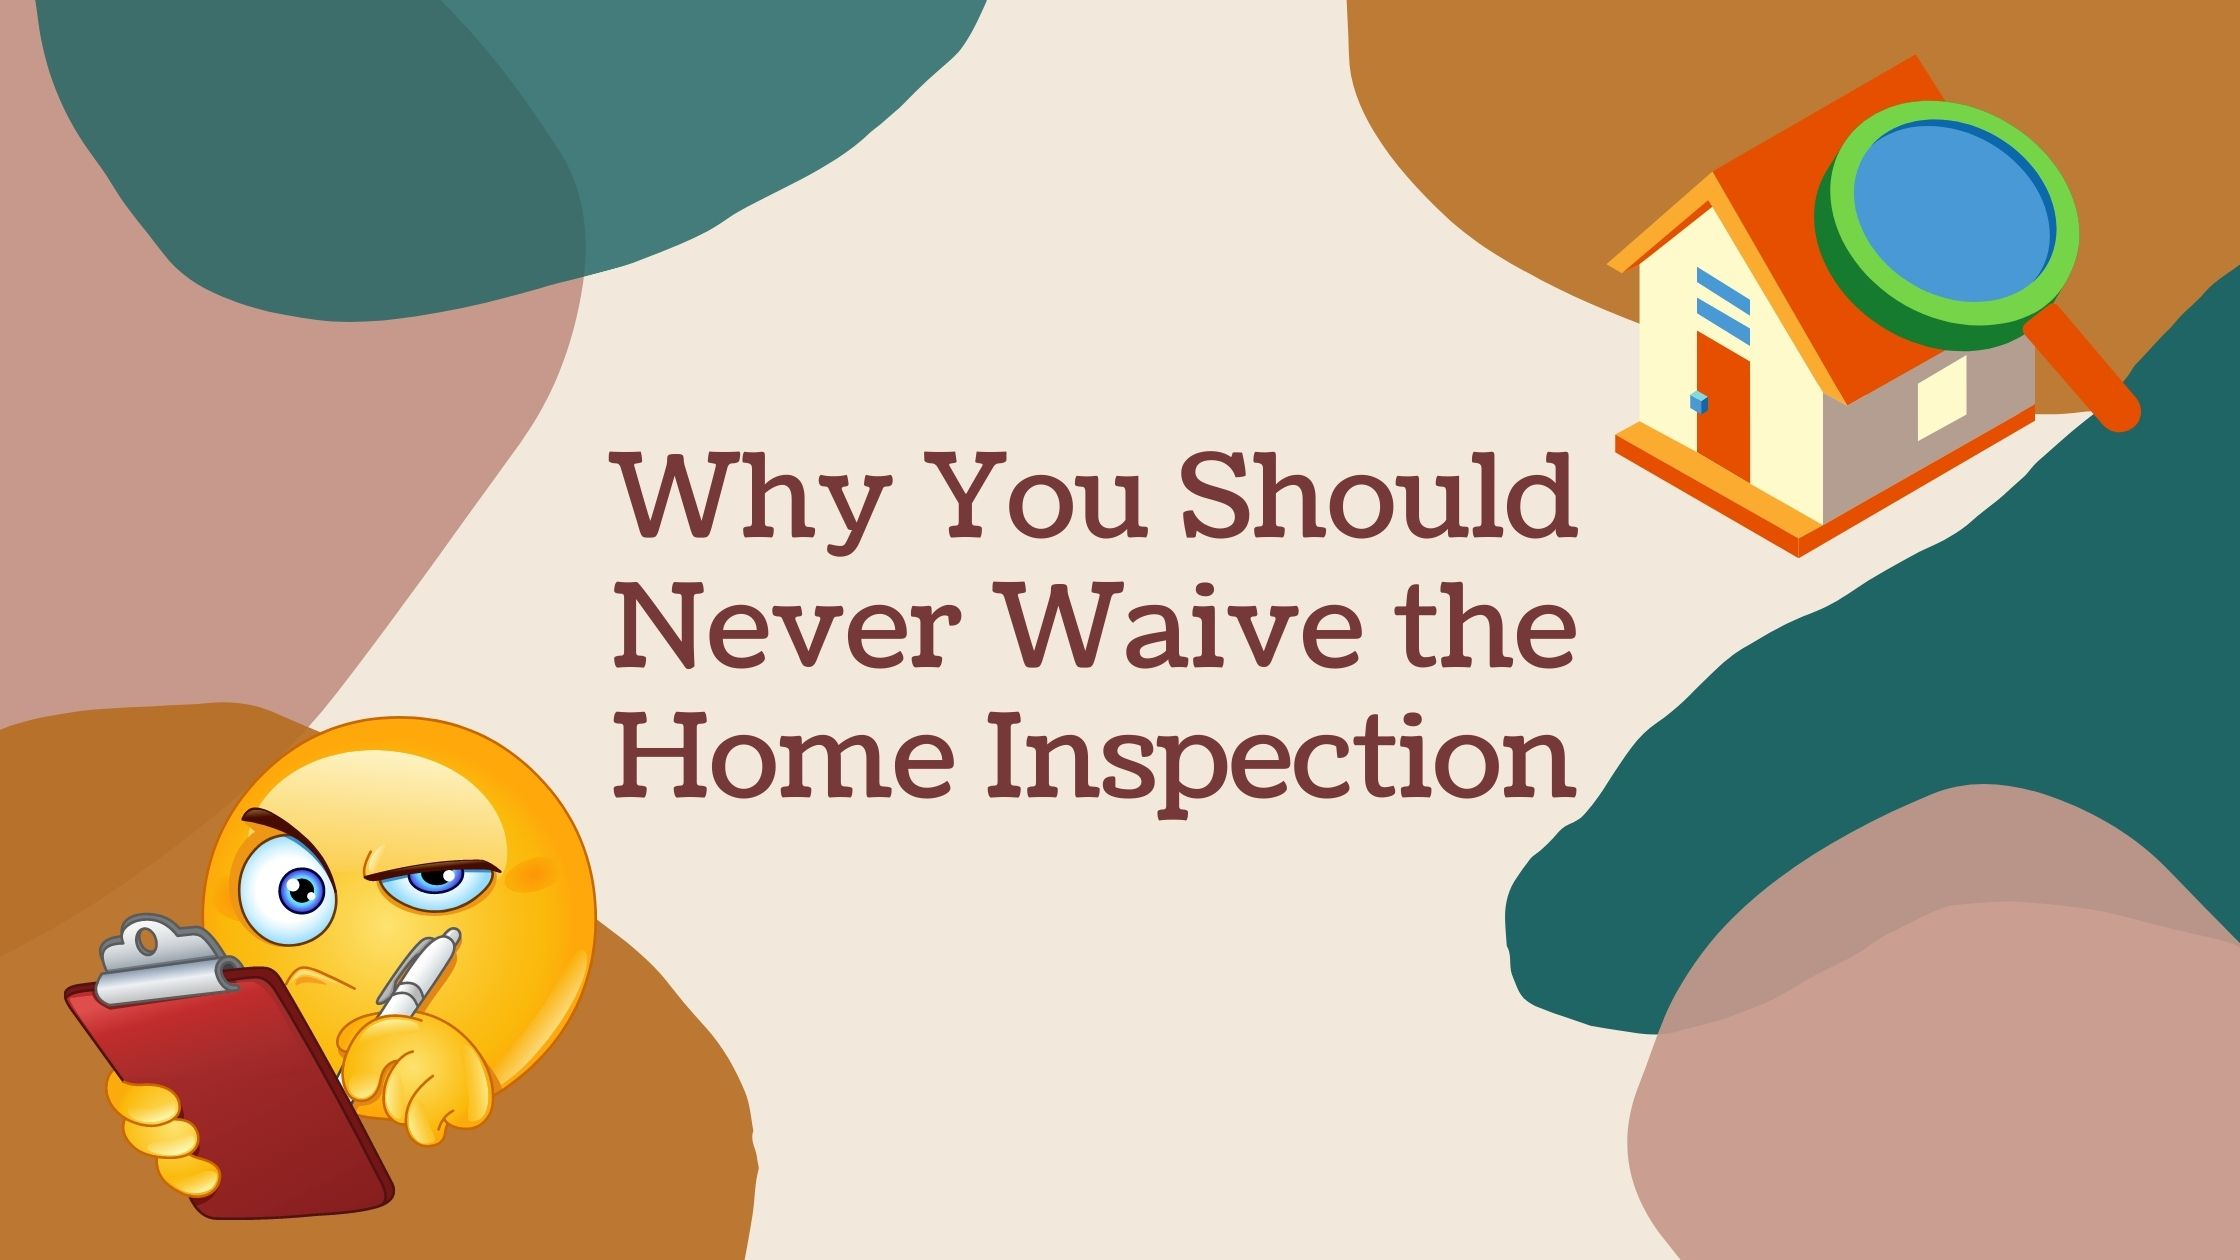 Why You Should Never Waive the Home Inspection